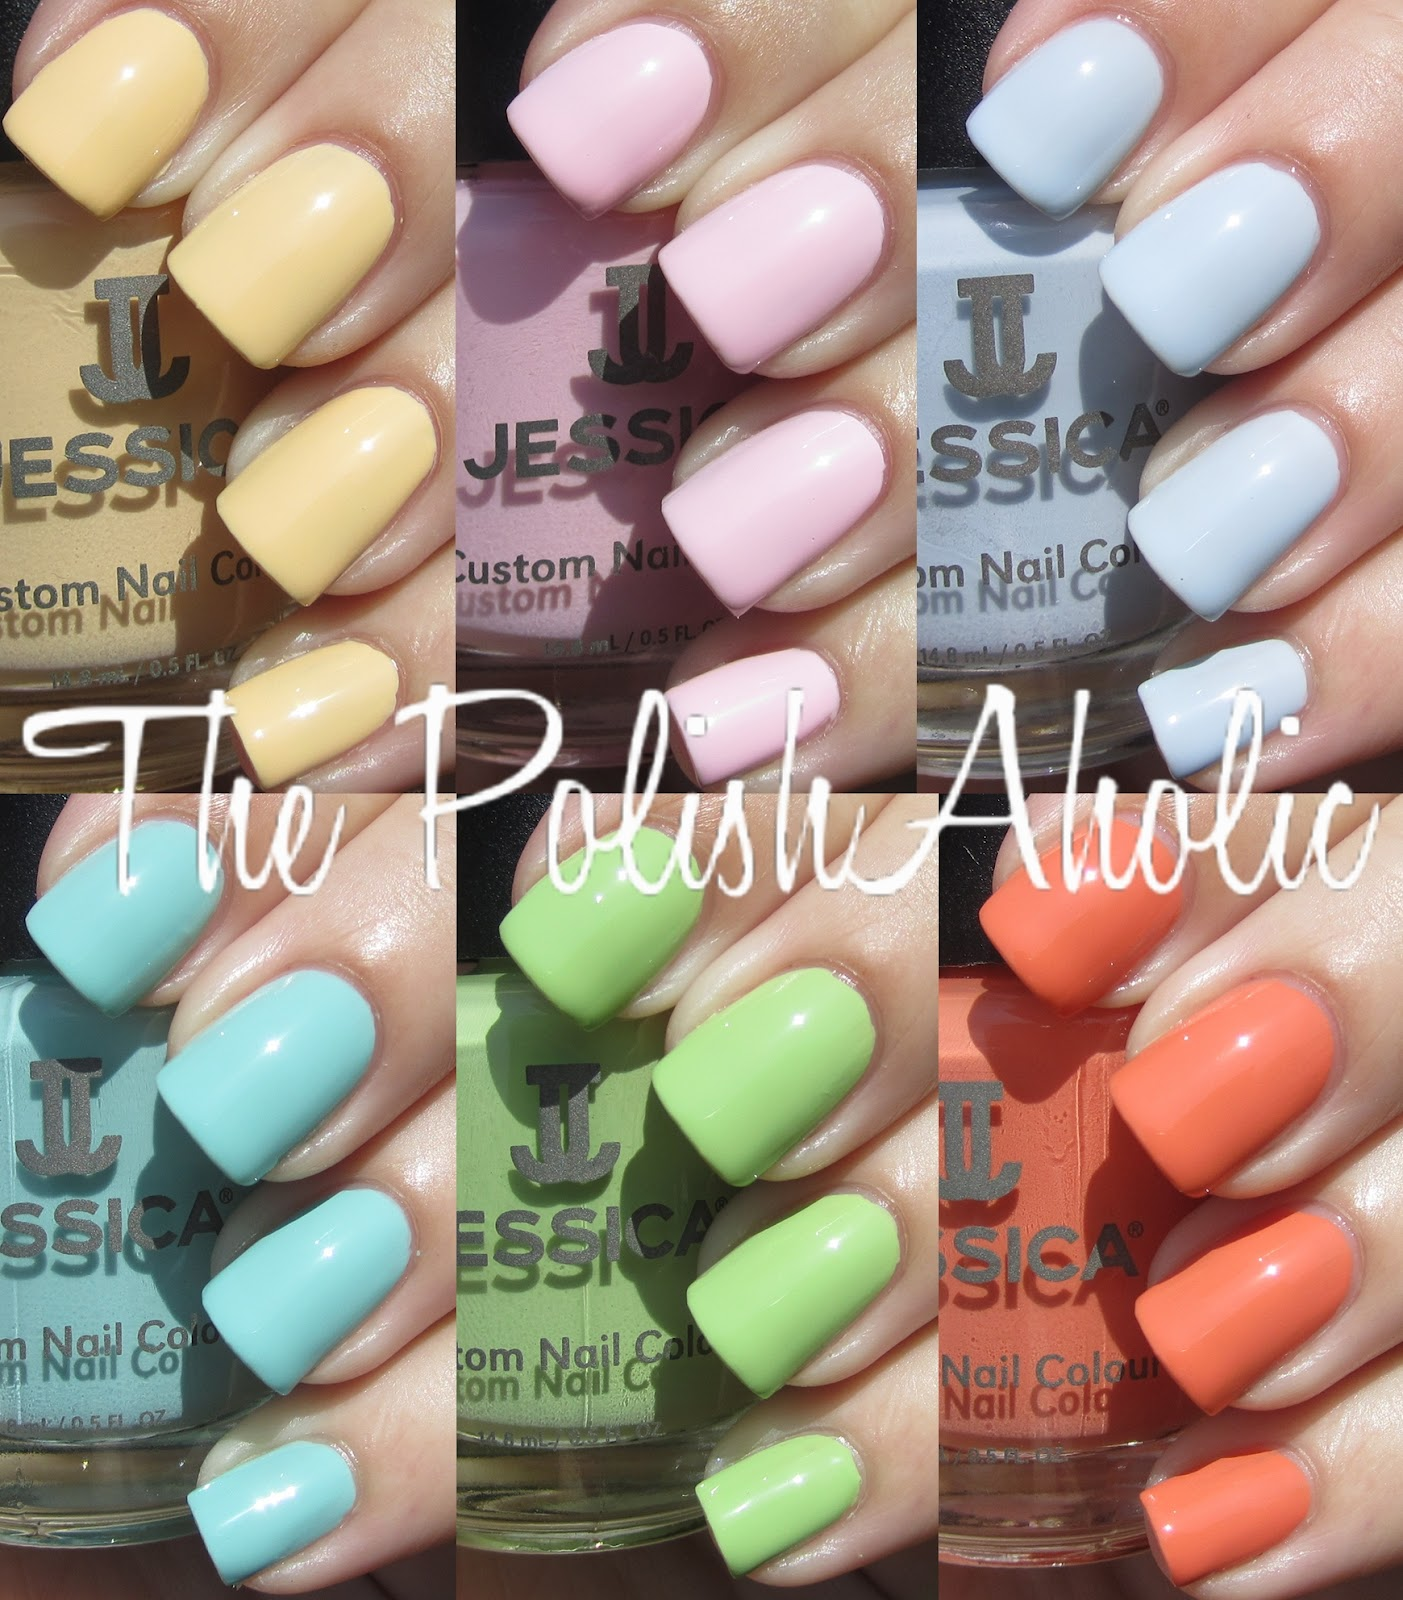 The PolishAholic Jessica Summer 2012 Gelato Mio Collection Swatches